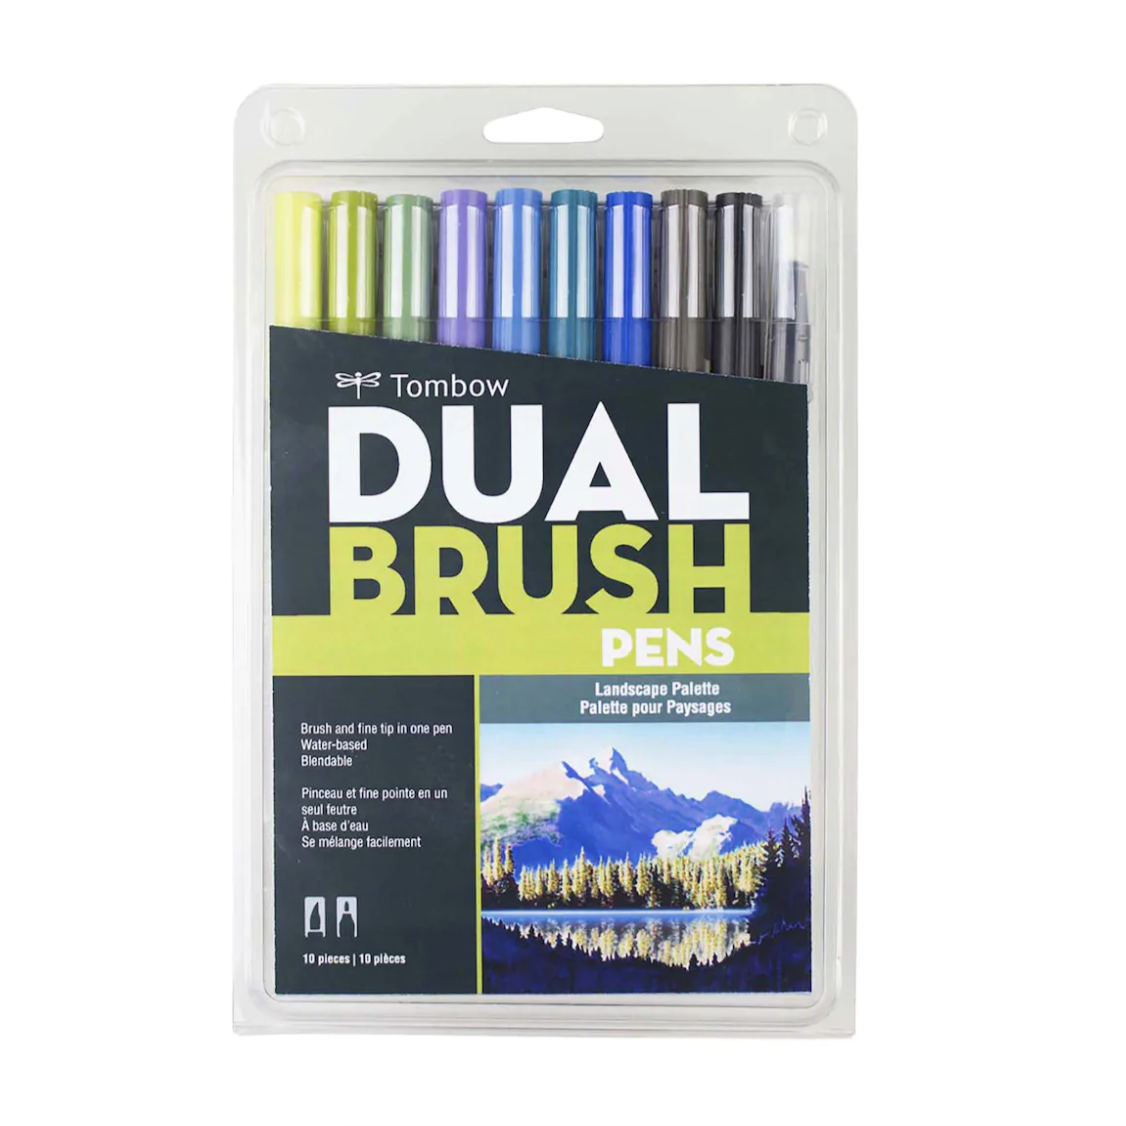 Tombow Dual Brush Pen and Artist Markers - Set of 10 - Landscape Palette by Tombow - K. A. Artist Shop